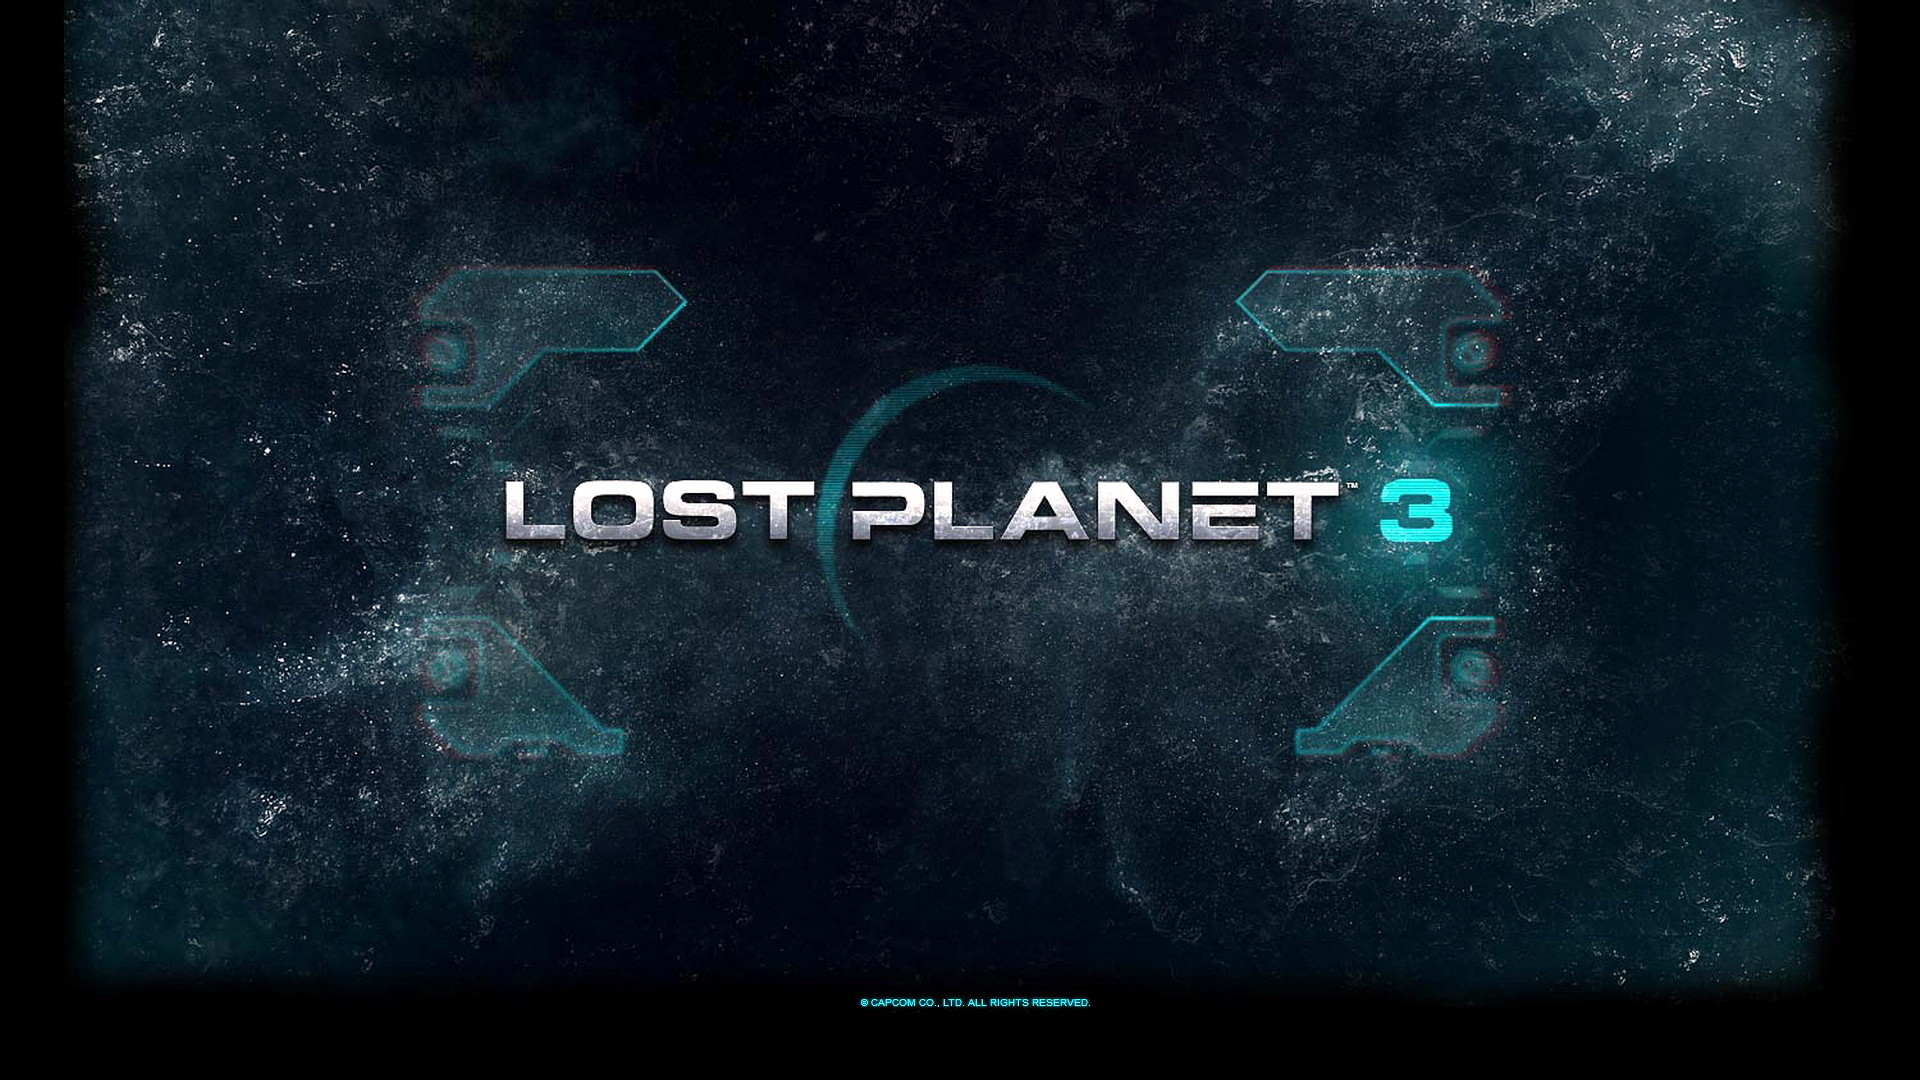 8 HD Lost Planet 3 Desktop Wallpapers For Free Download